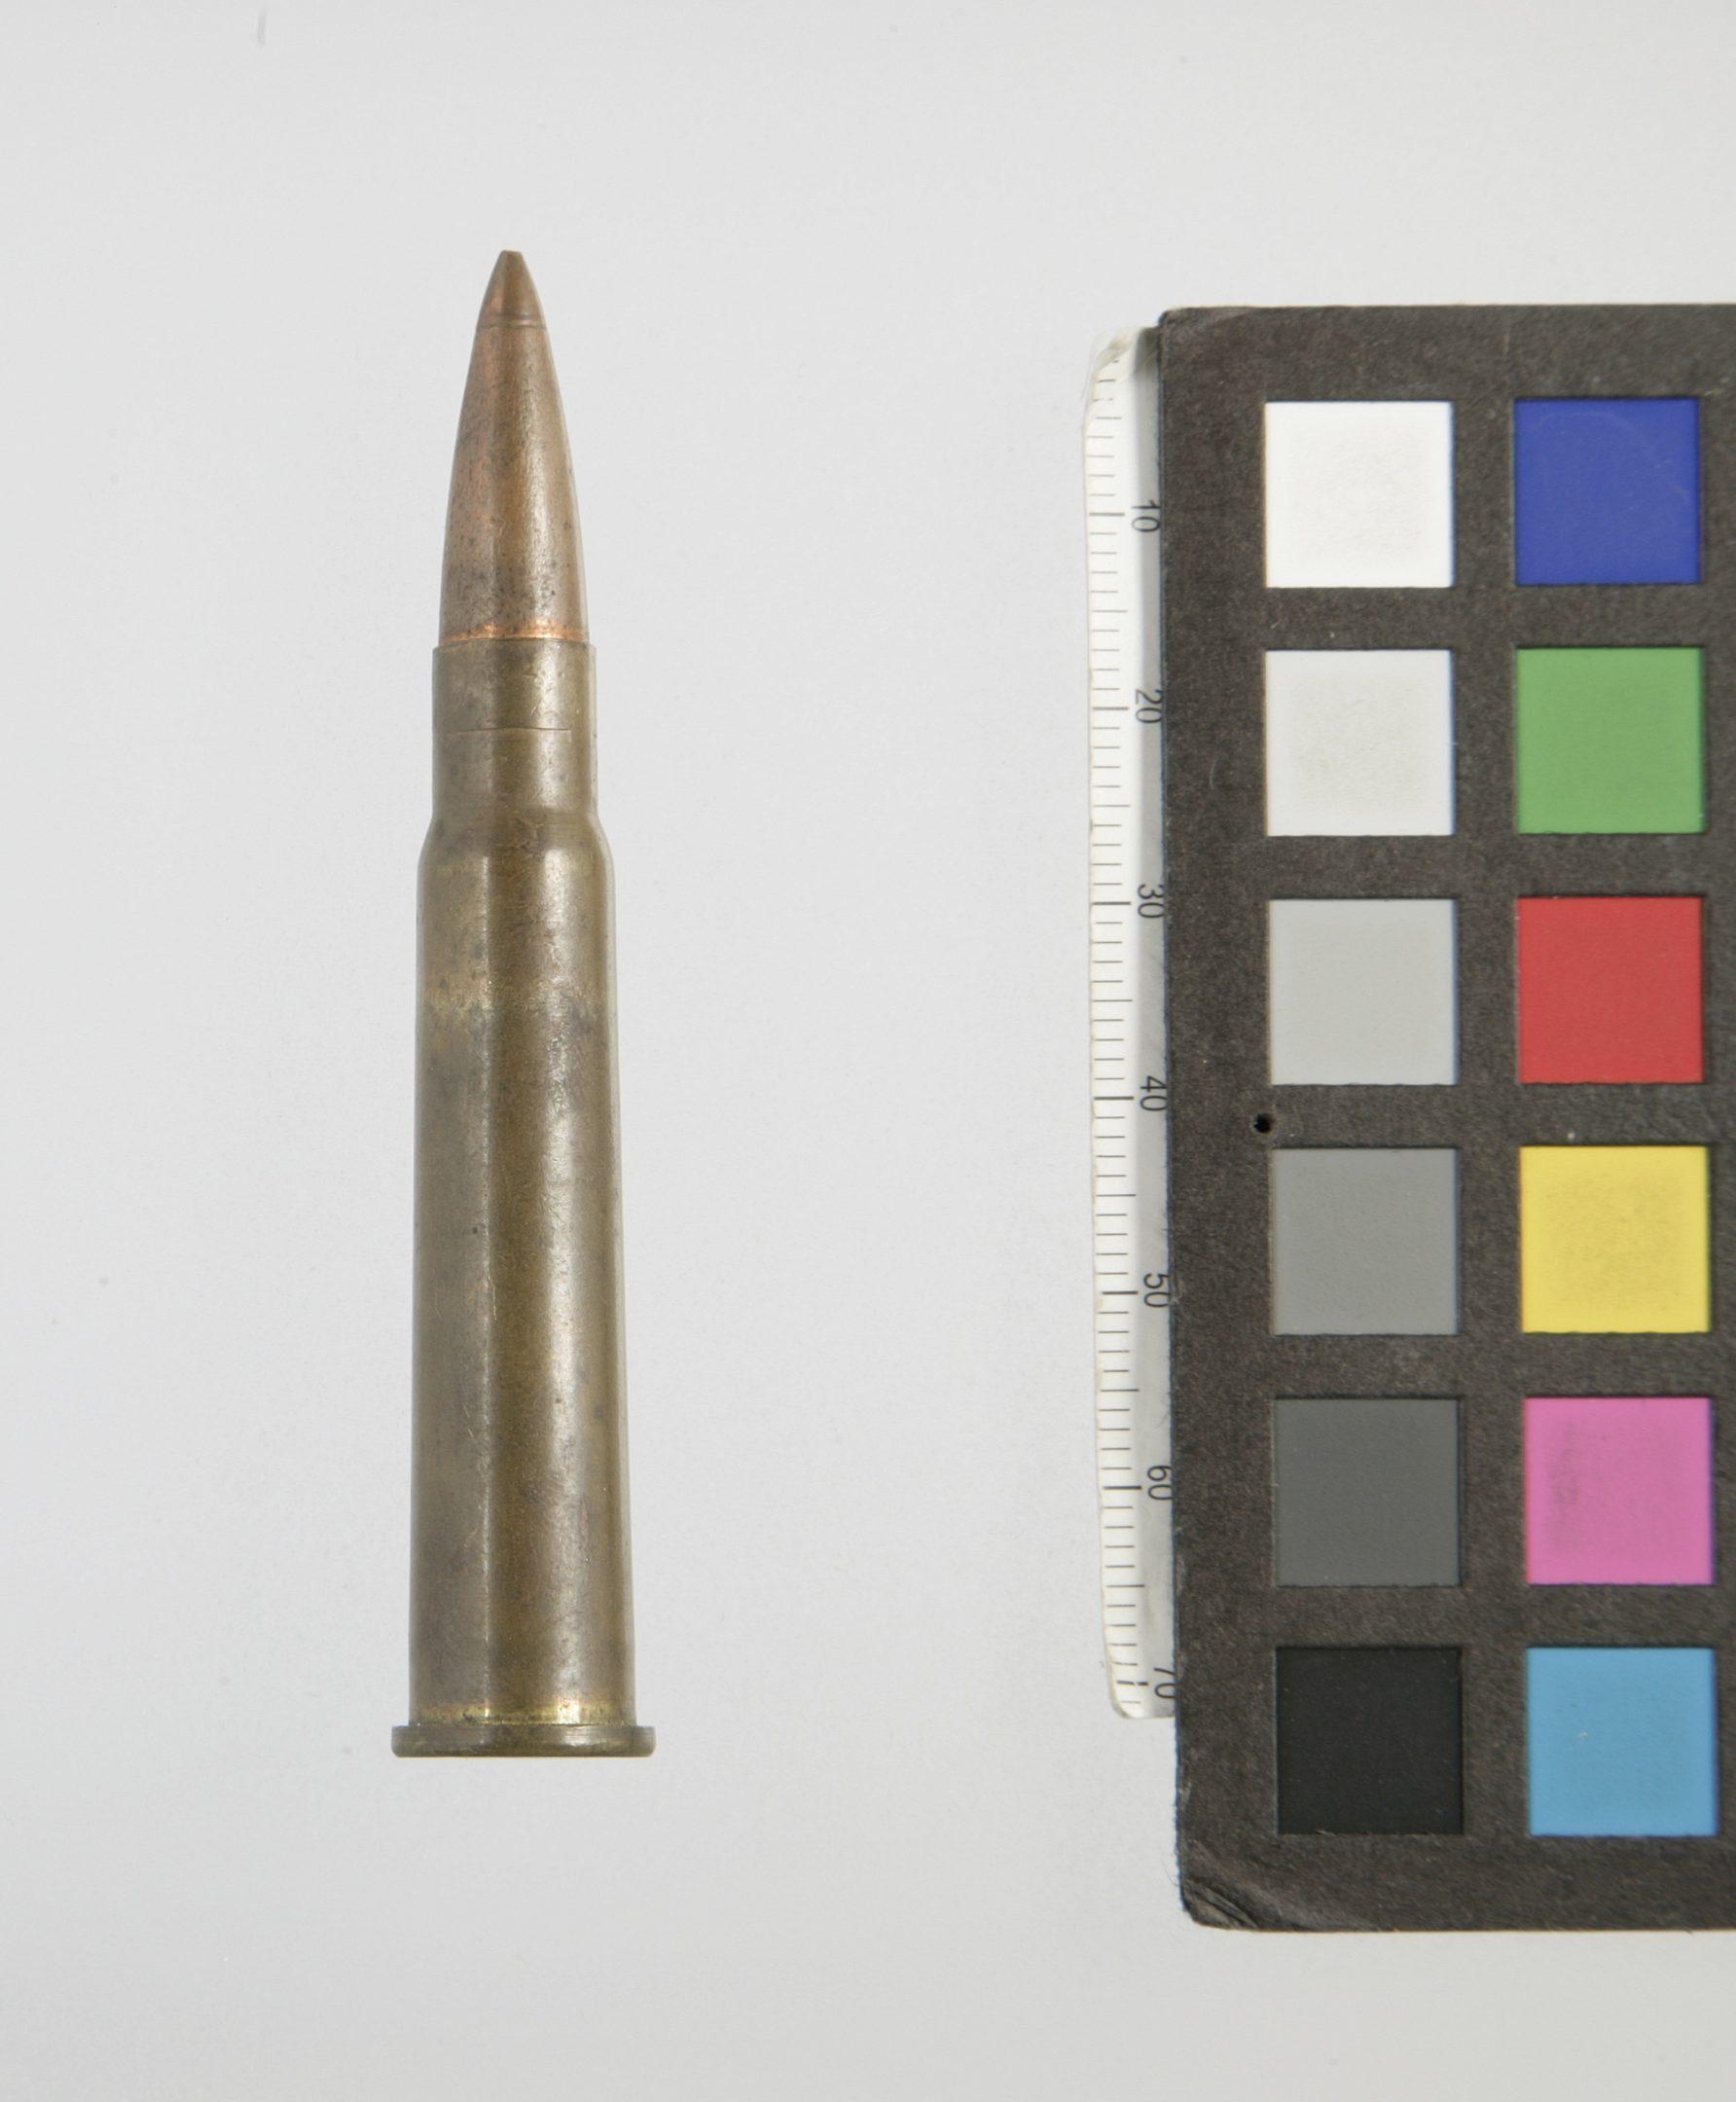 Photo of a .303 cartridge